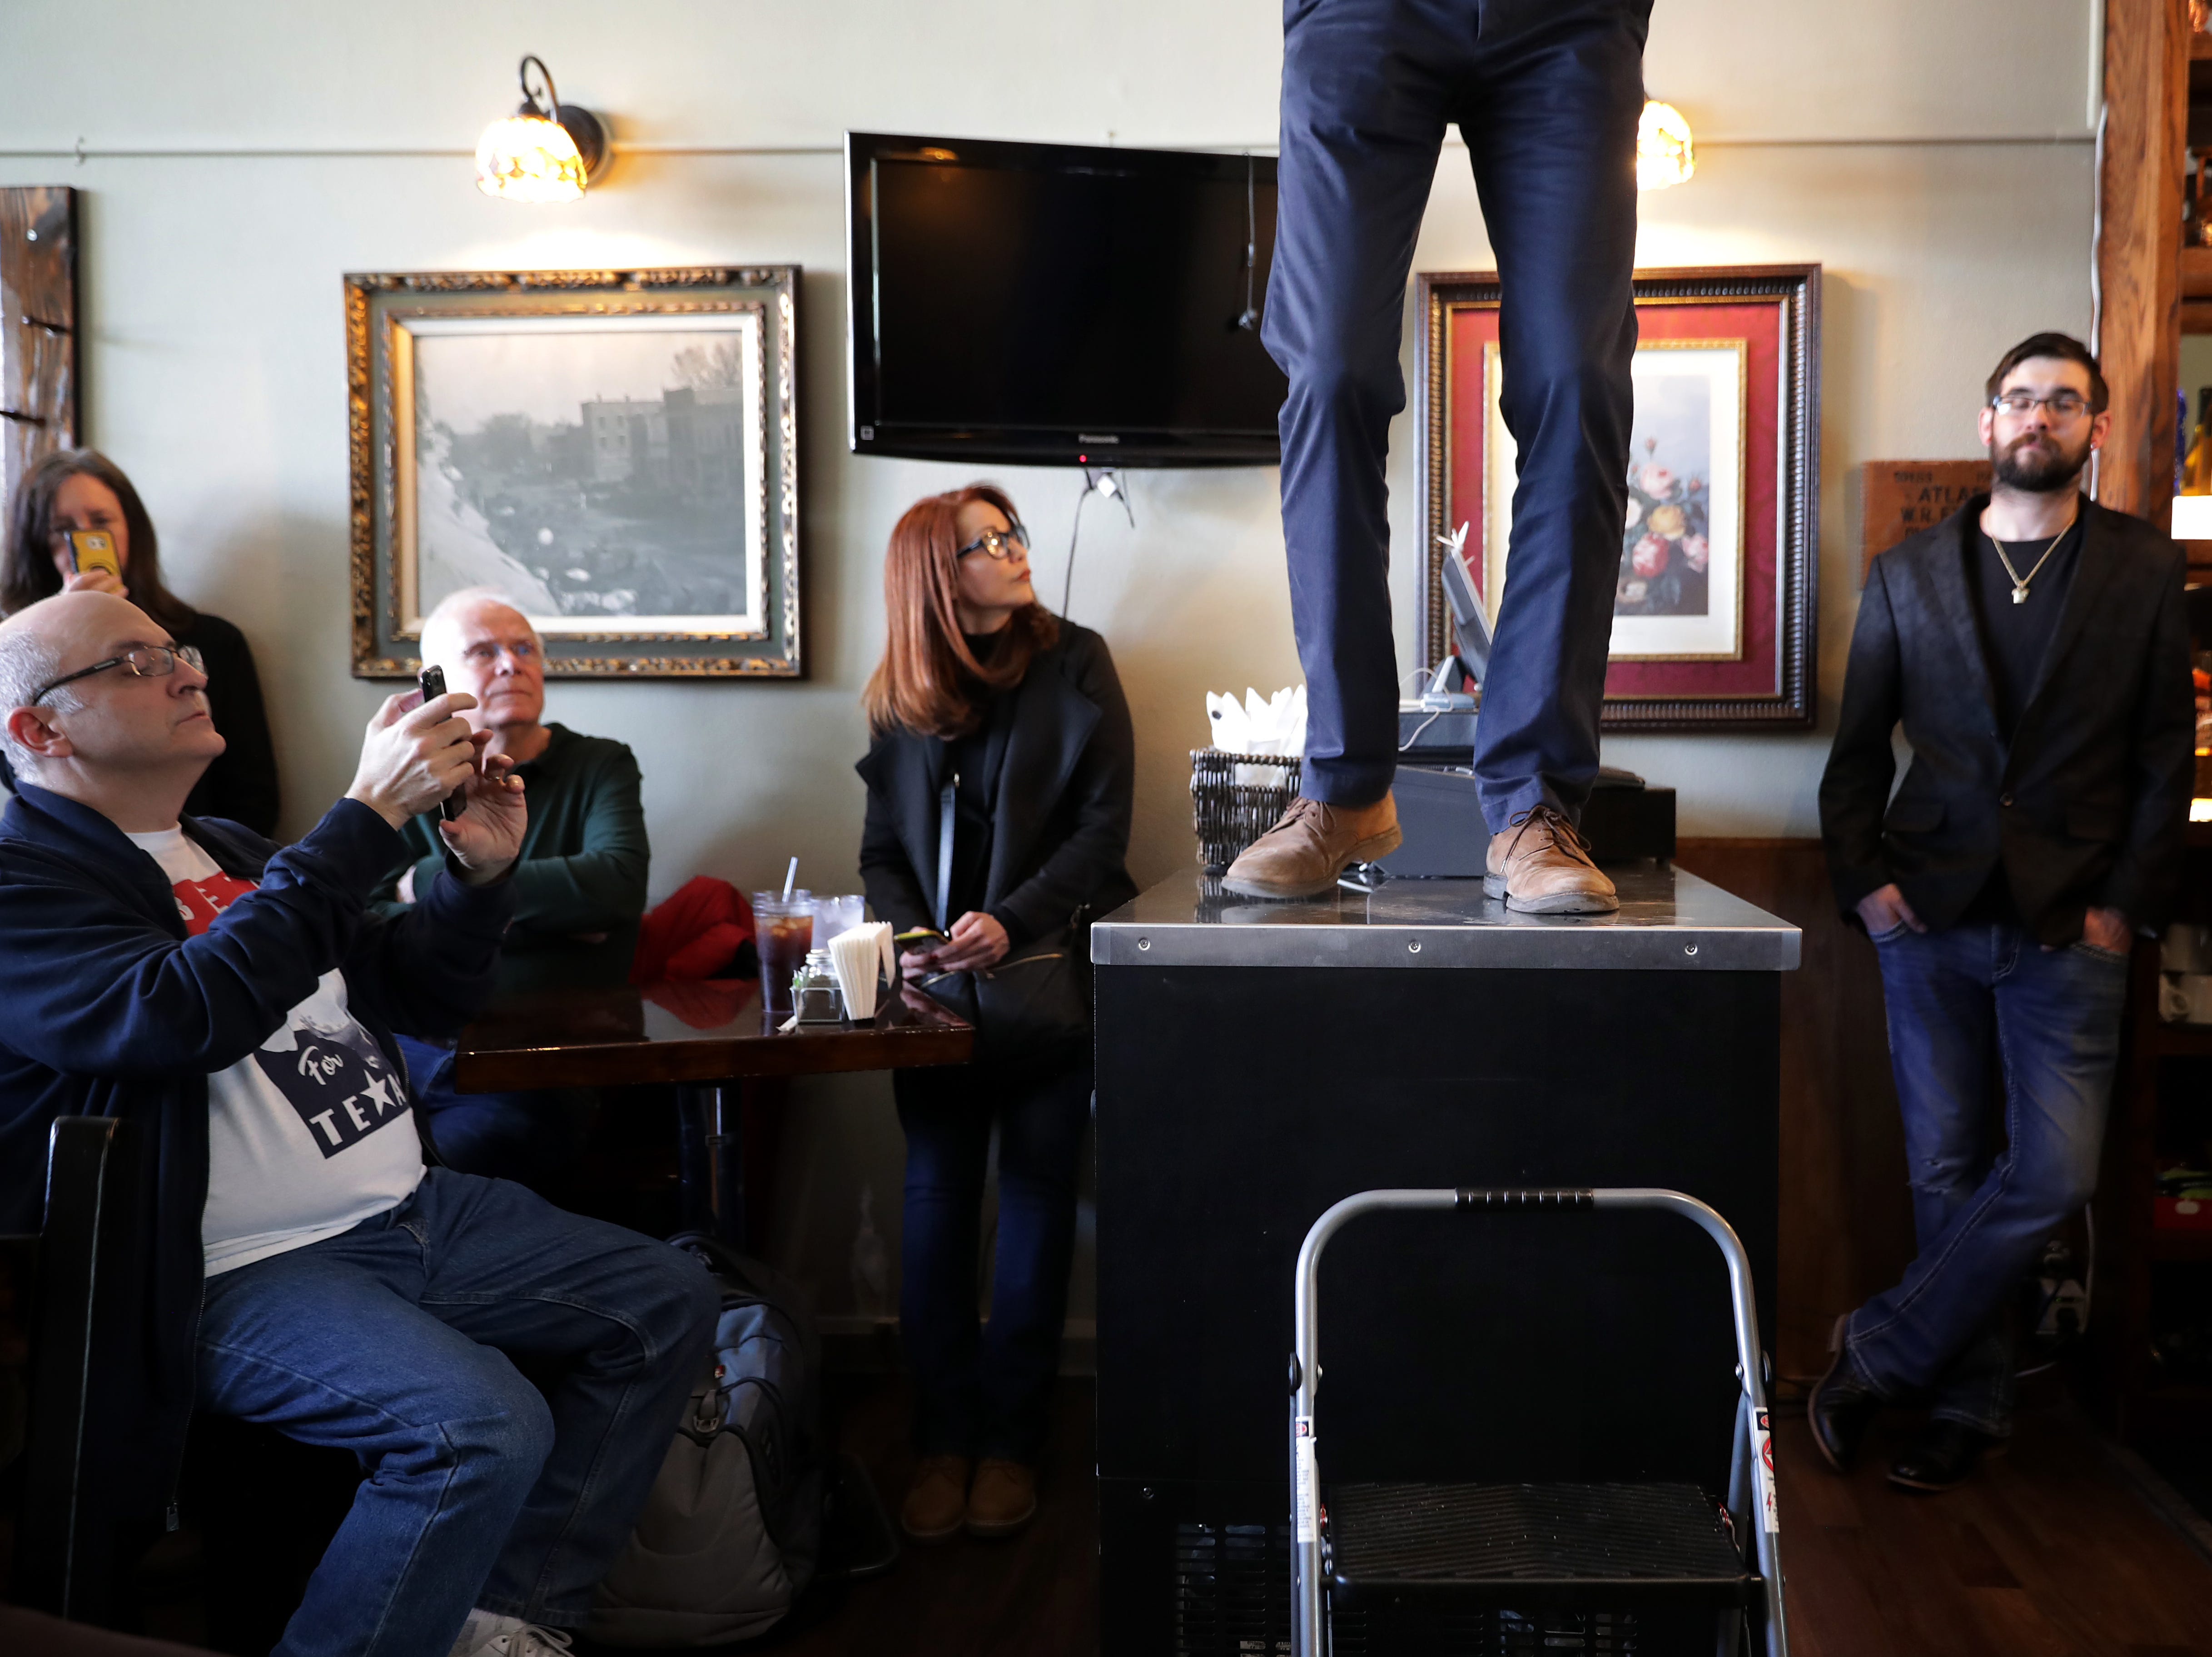 MOUNT VERNON, IOWA - MARCH 15: Democratic presidential candidate Beto O'Rourke answers questions from voters during his second day of campaigning for the 2020 nomination at The Sing-A-Long Bar and Grill March 15, 2019 in Mount Vernon, Iowa. After losing a long-shot race for U.S. Senate to Ted Cruz (R-TX), the 46-year-old O'Rourke is making his first campaign swing through Iowa after jumping into a crowded Democratic field this week. (Photo by Chip Somodevilla/Getty Images)